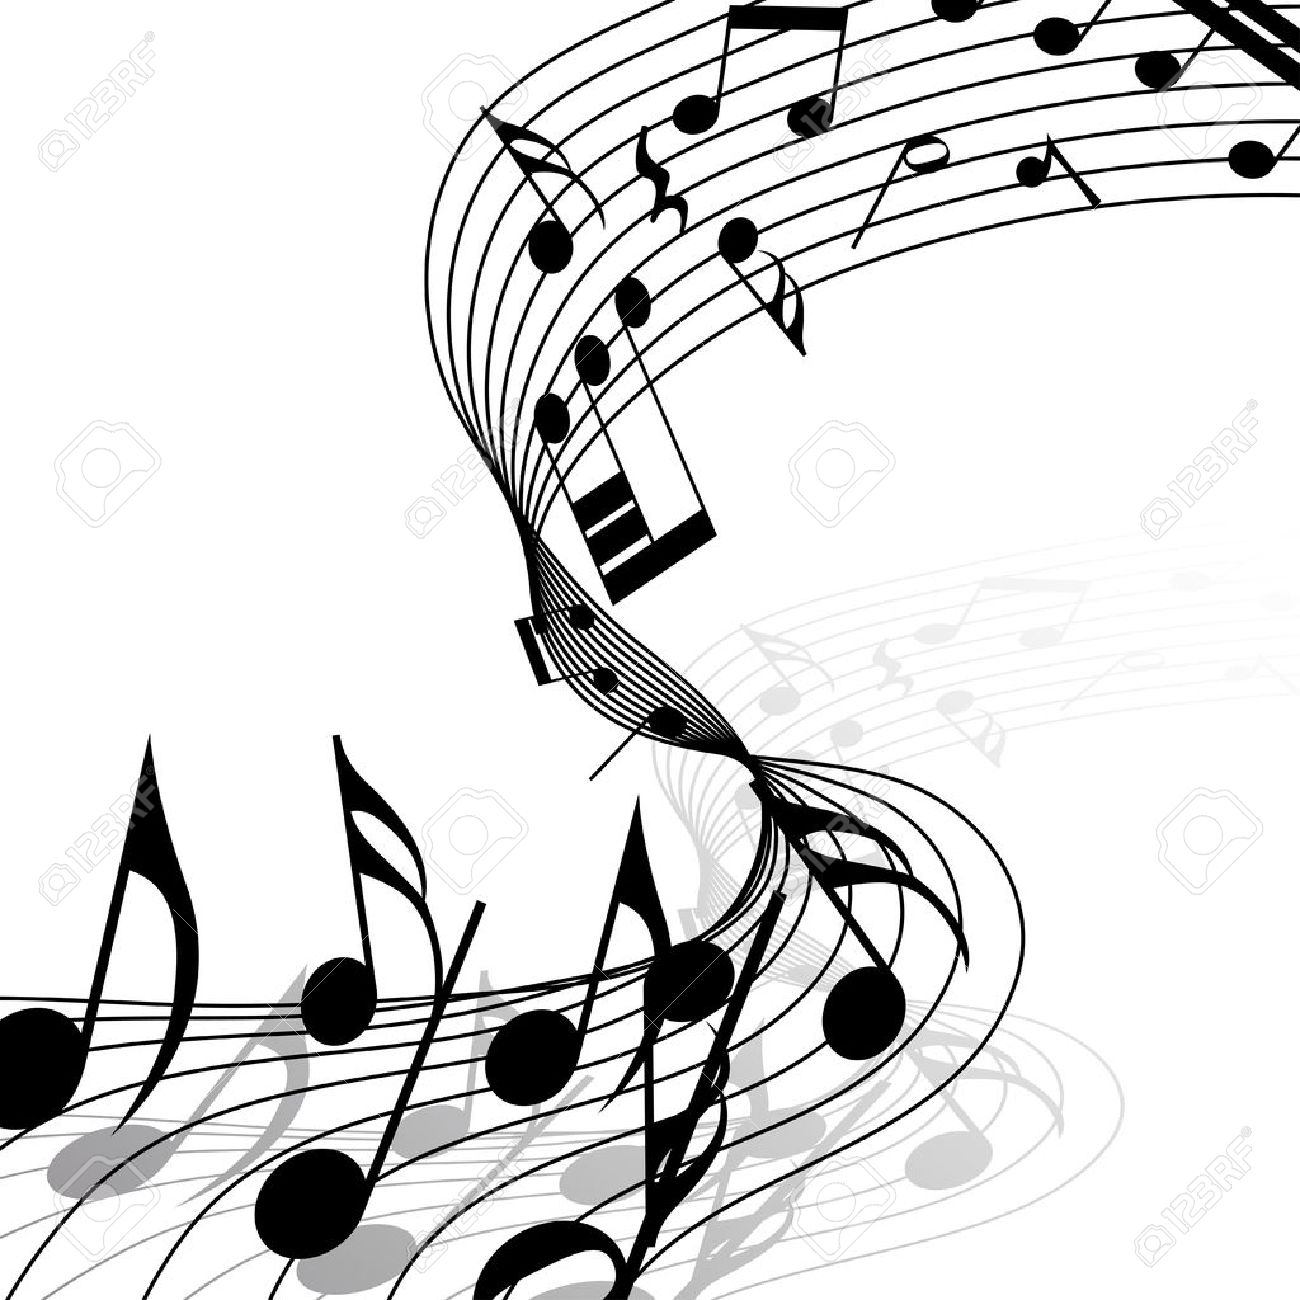 Musical notes staff background on white vector by tassel78 image - Flow Sheet Musical Notes Staff Background With Lines Illustration Illustration